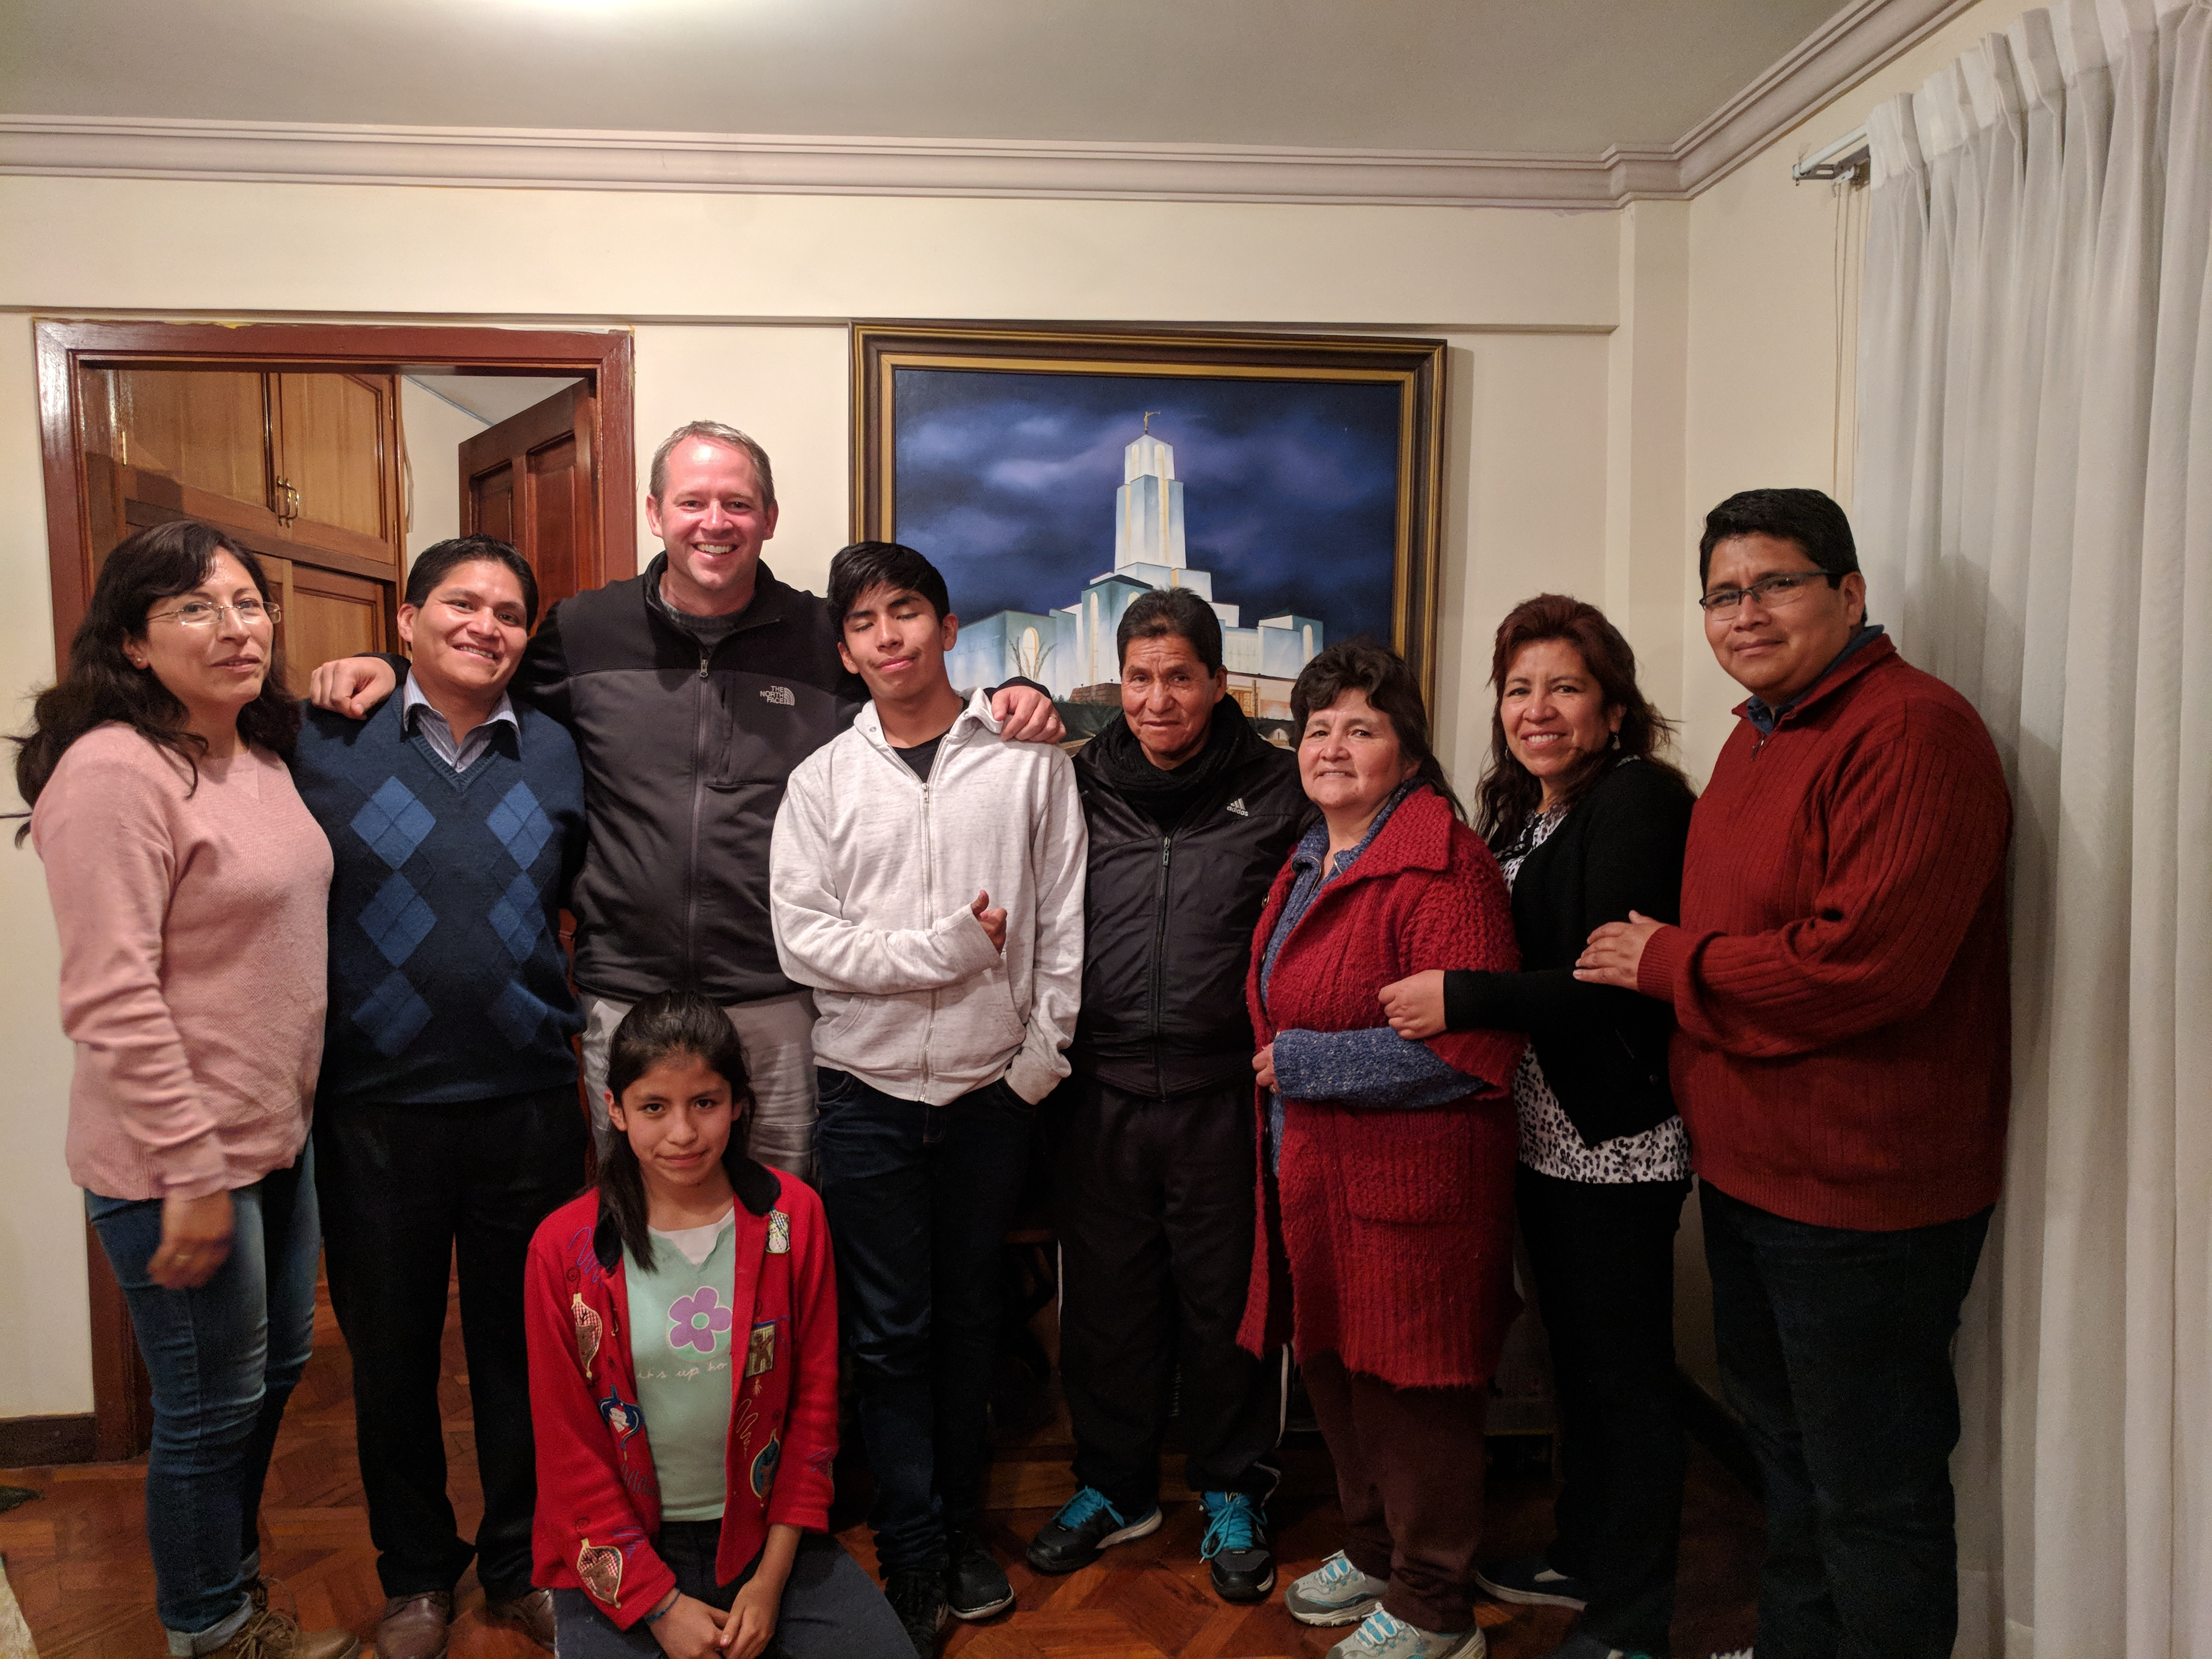 David McConkie (center left) with the Vasquez family in La Paz, Bolivia in October. McConkie was mission companions with William Vasquez, far right, 20 years ago.